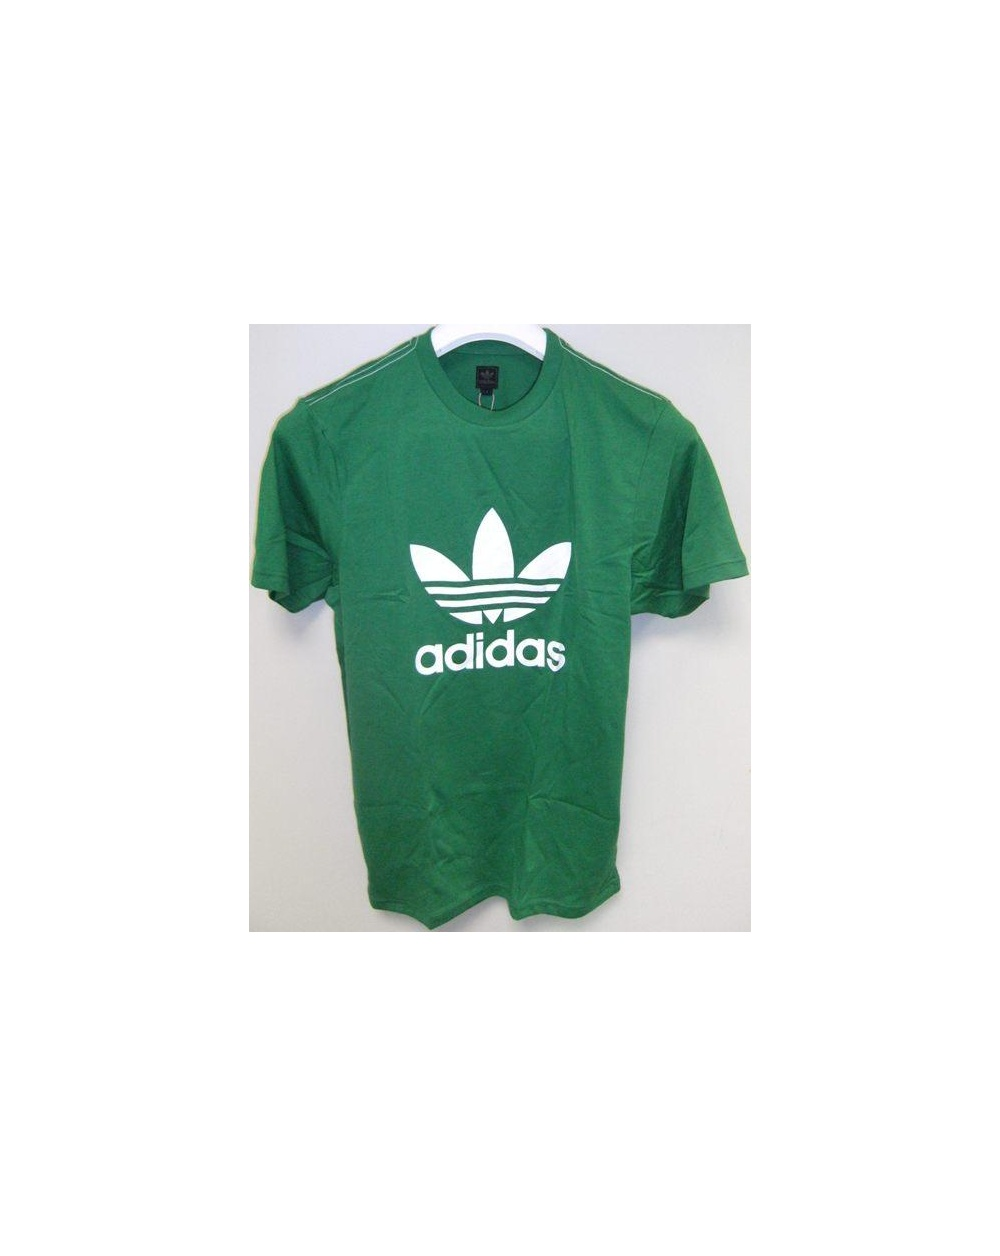 Adidas originals trefoil t shirt with large logo green 0 for Adidas lotus t shirt